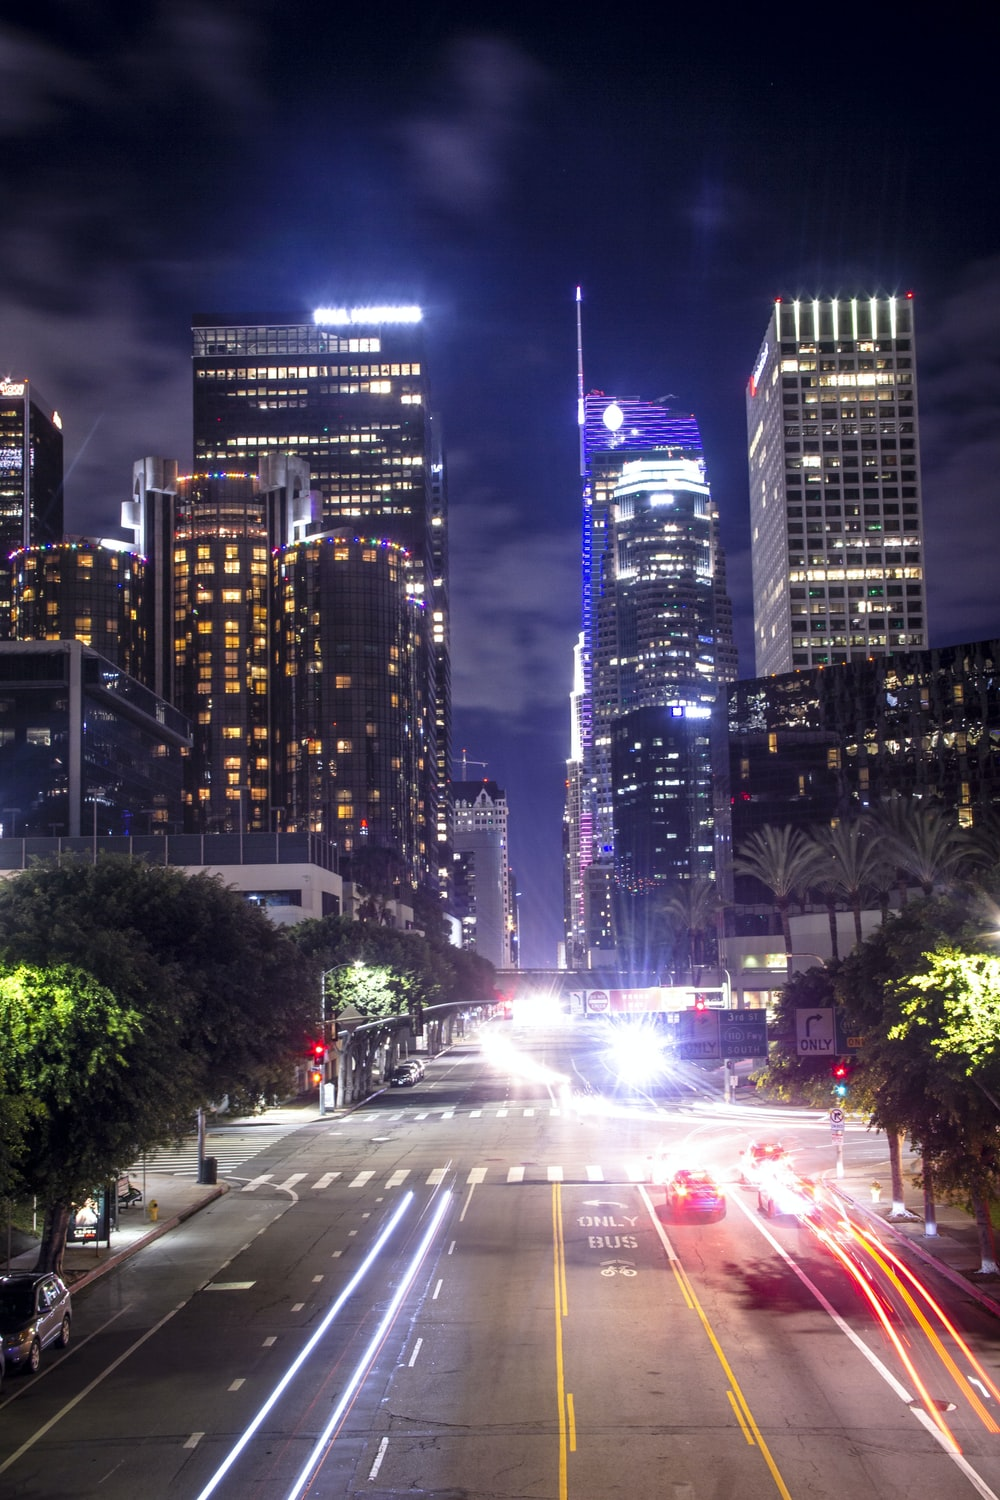 city buildings with lights turned on during night time